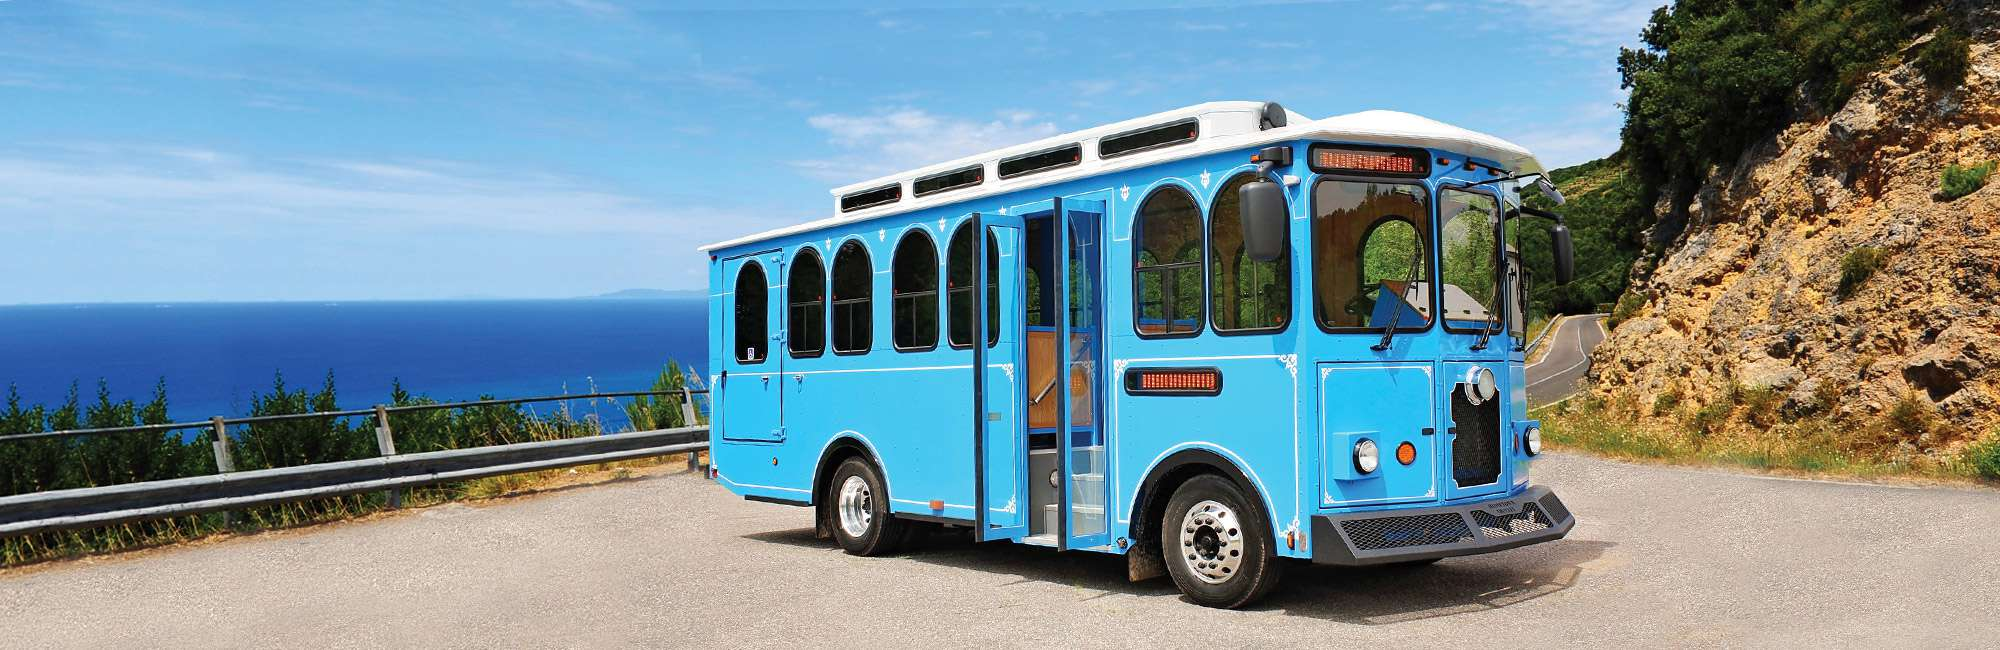 New-buses-Trolley-5_compressed.jpg